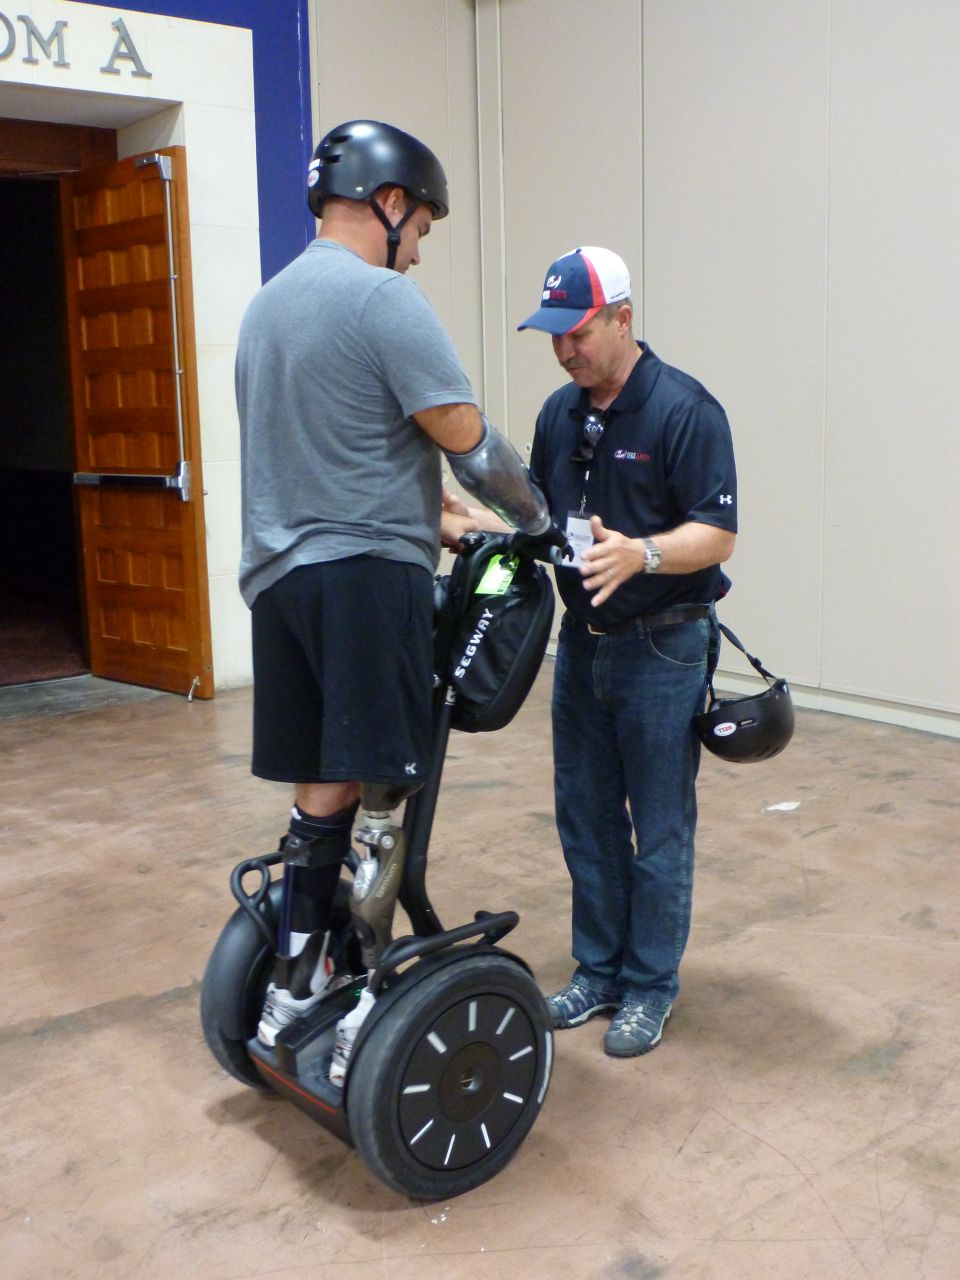 A Wounded Warrior Learning To Use The Segway